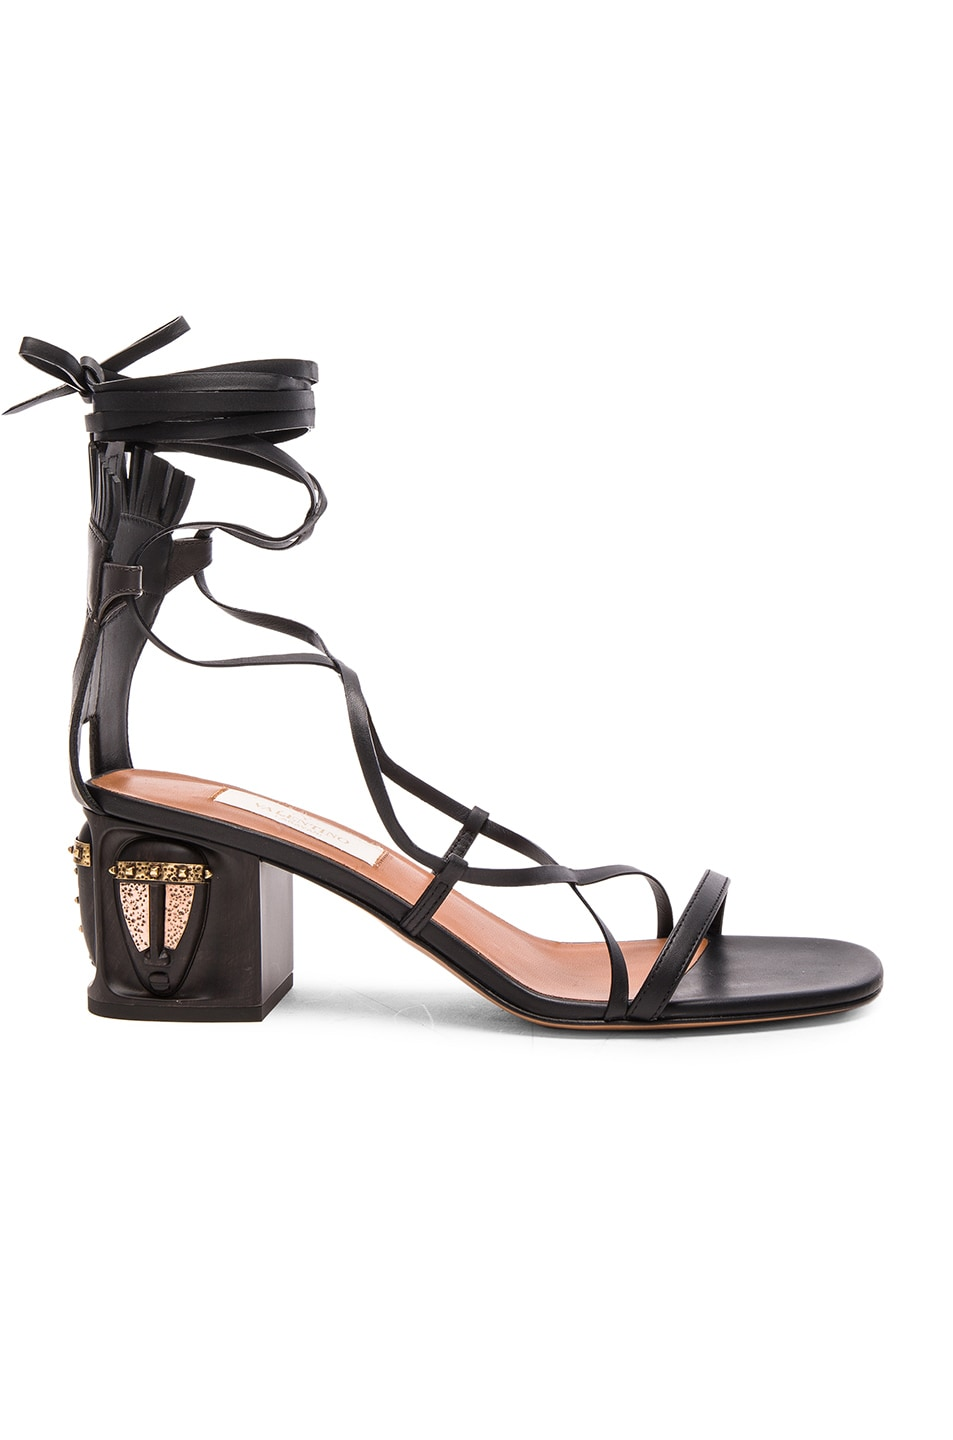 Image 1 of Valentino Tribe Gladiator Leather Heeled Sandals in Black & Deep Ebano